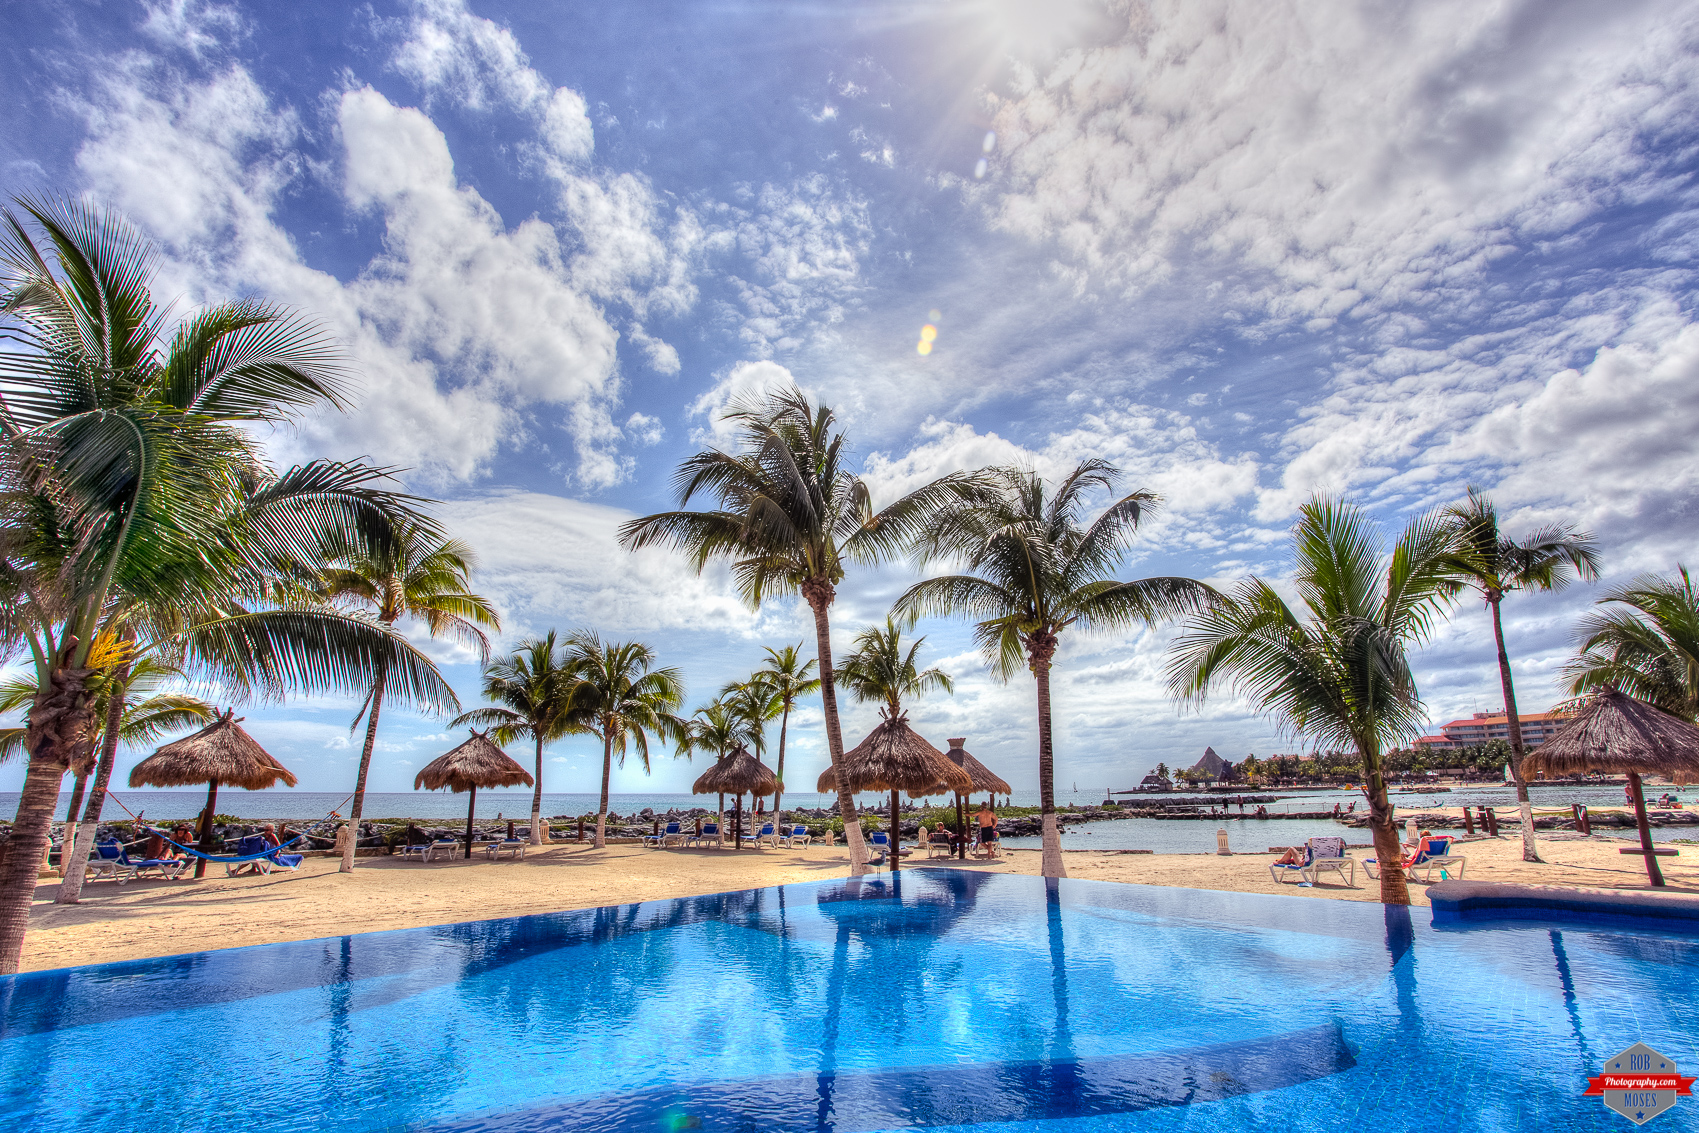 Playa del carmen rob moses photography - Palm beach pool ...